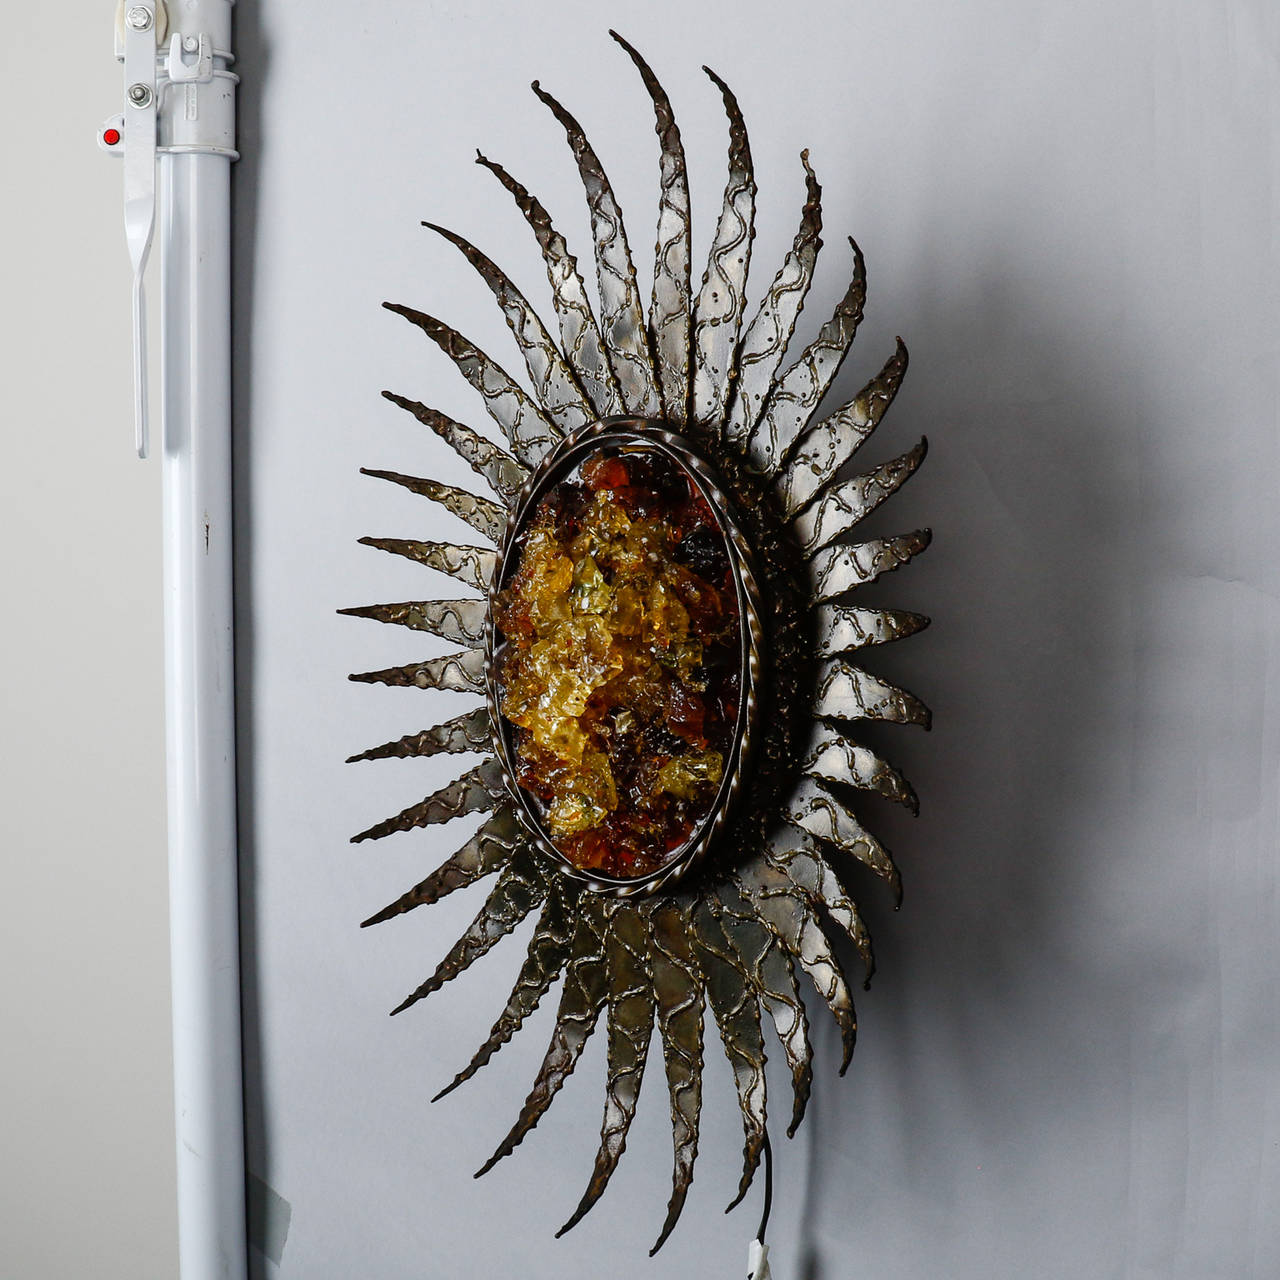 Large, circa 1970s single large sunburst or sunflower form sconce with textured metal petals and chunks of gold colored resin at the center. New wiring for US electrical standards.